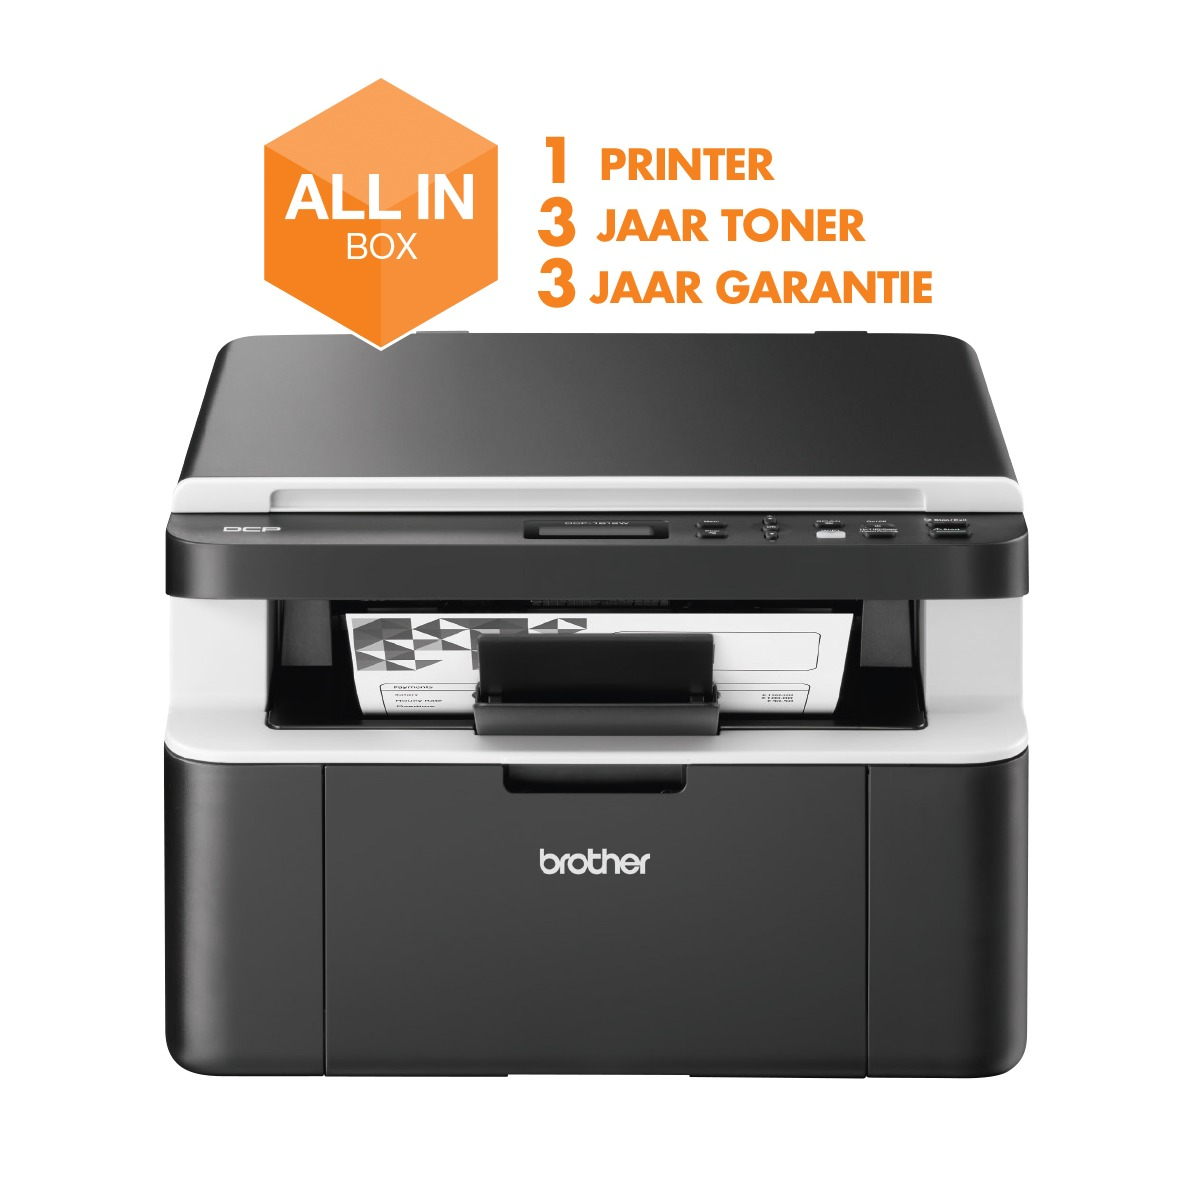 Brother all-in-one laser printer DCP-1612W (all-in-box)